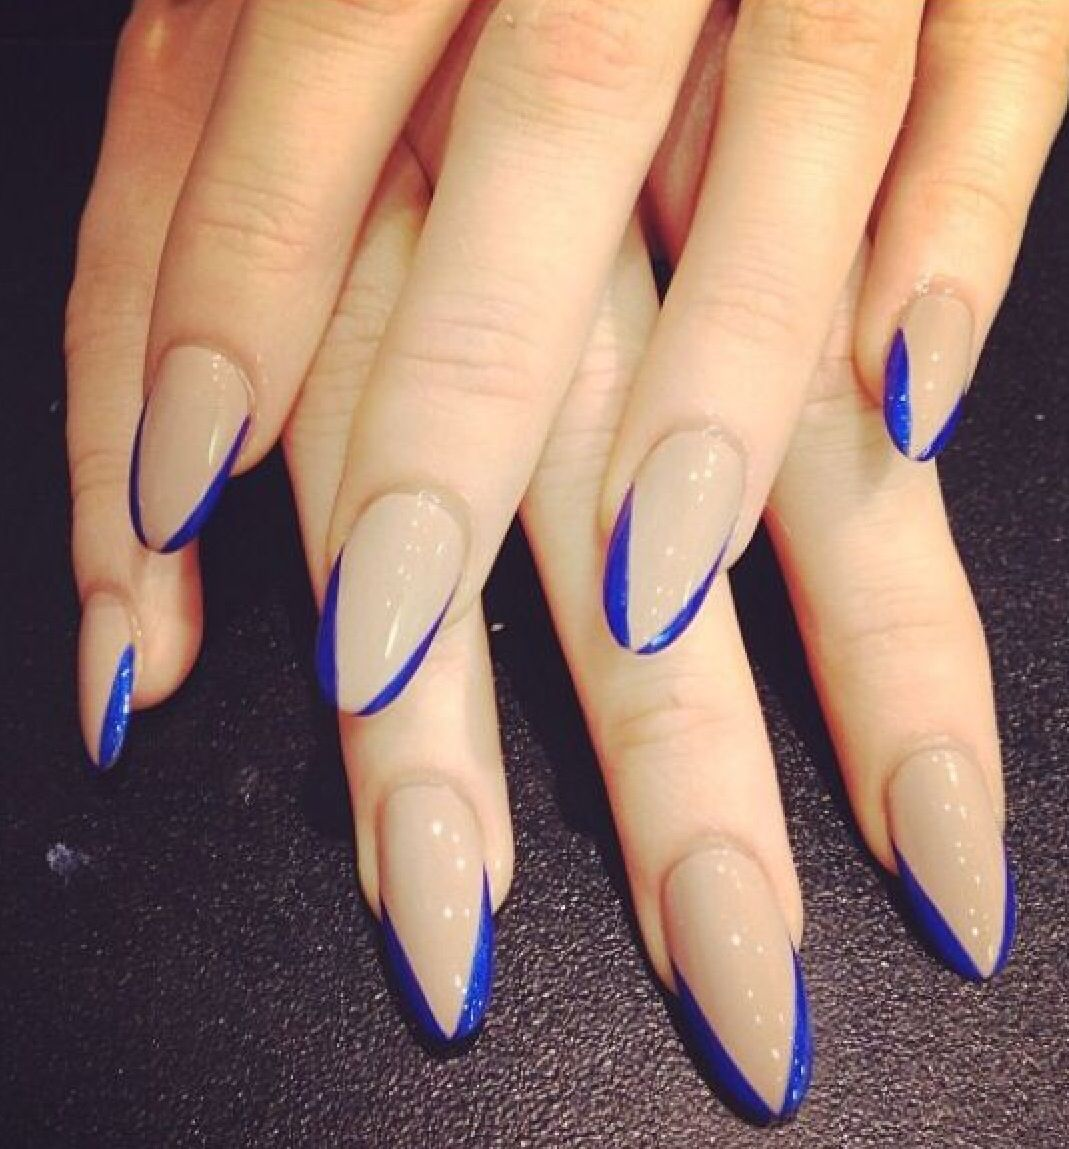 Think instead of blue, I\'d do red! These are pretty tho ...